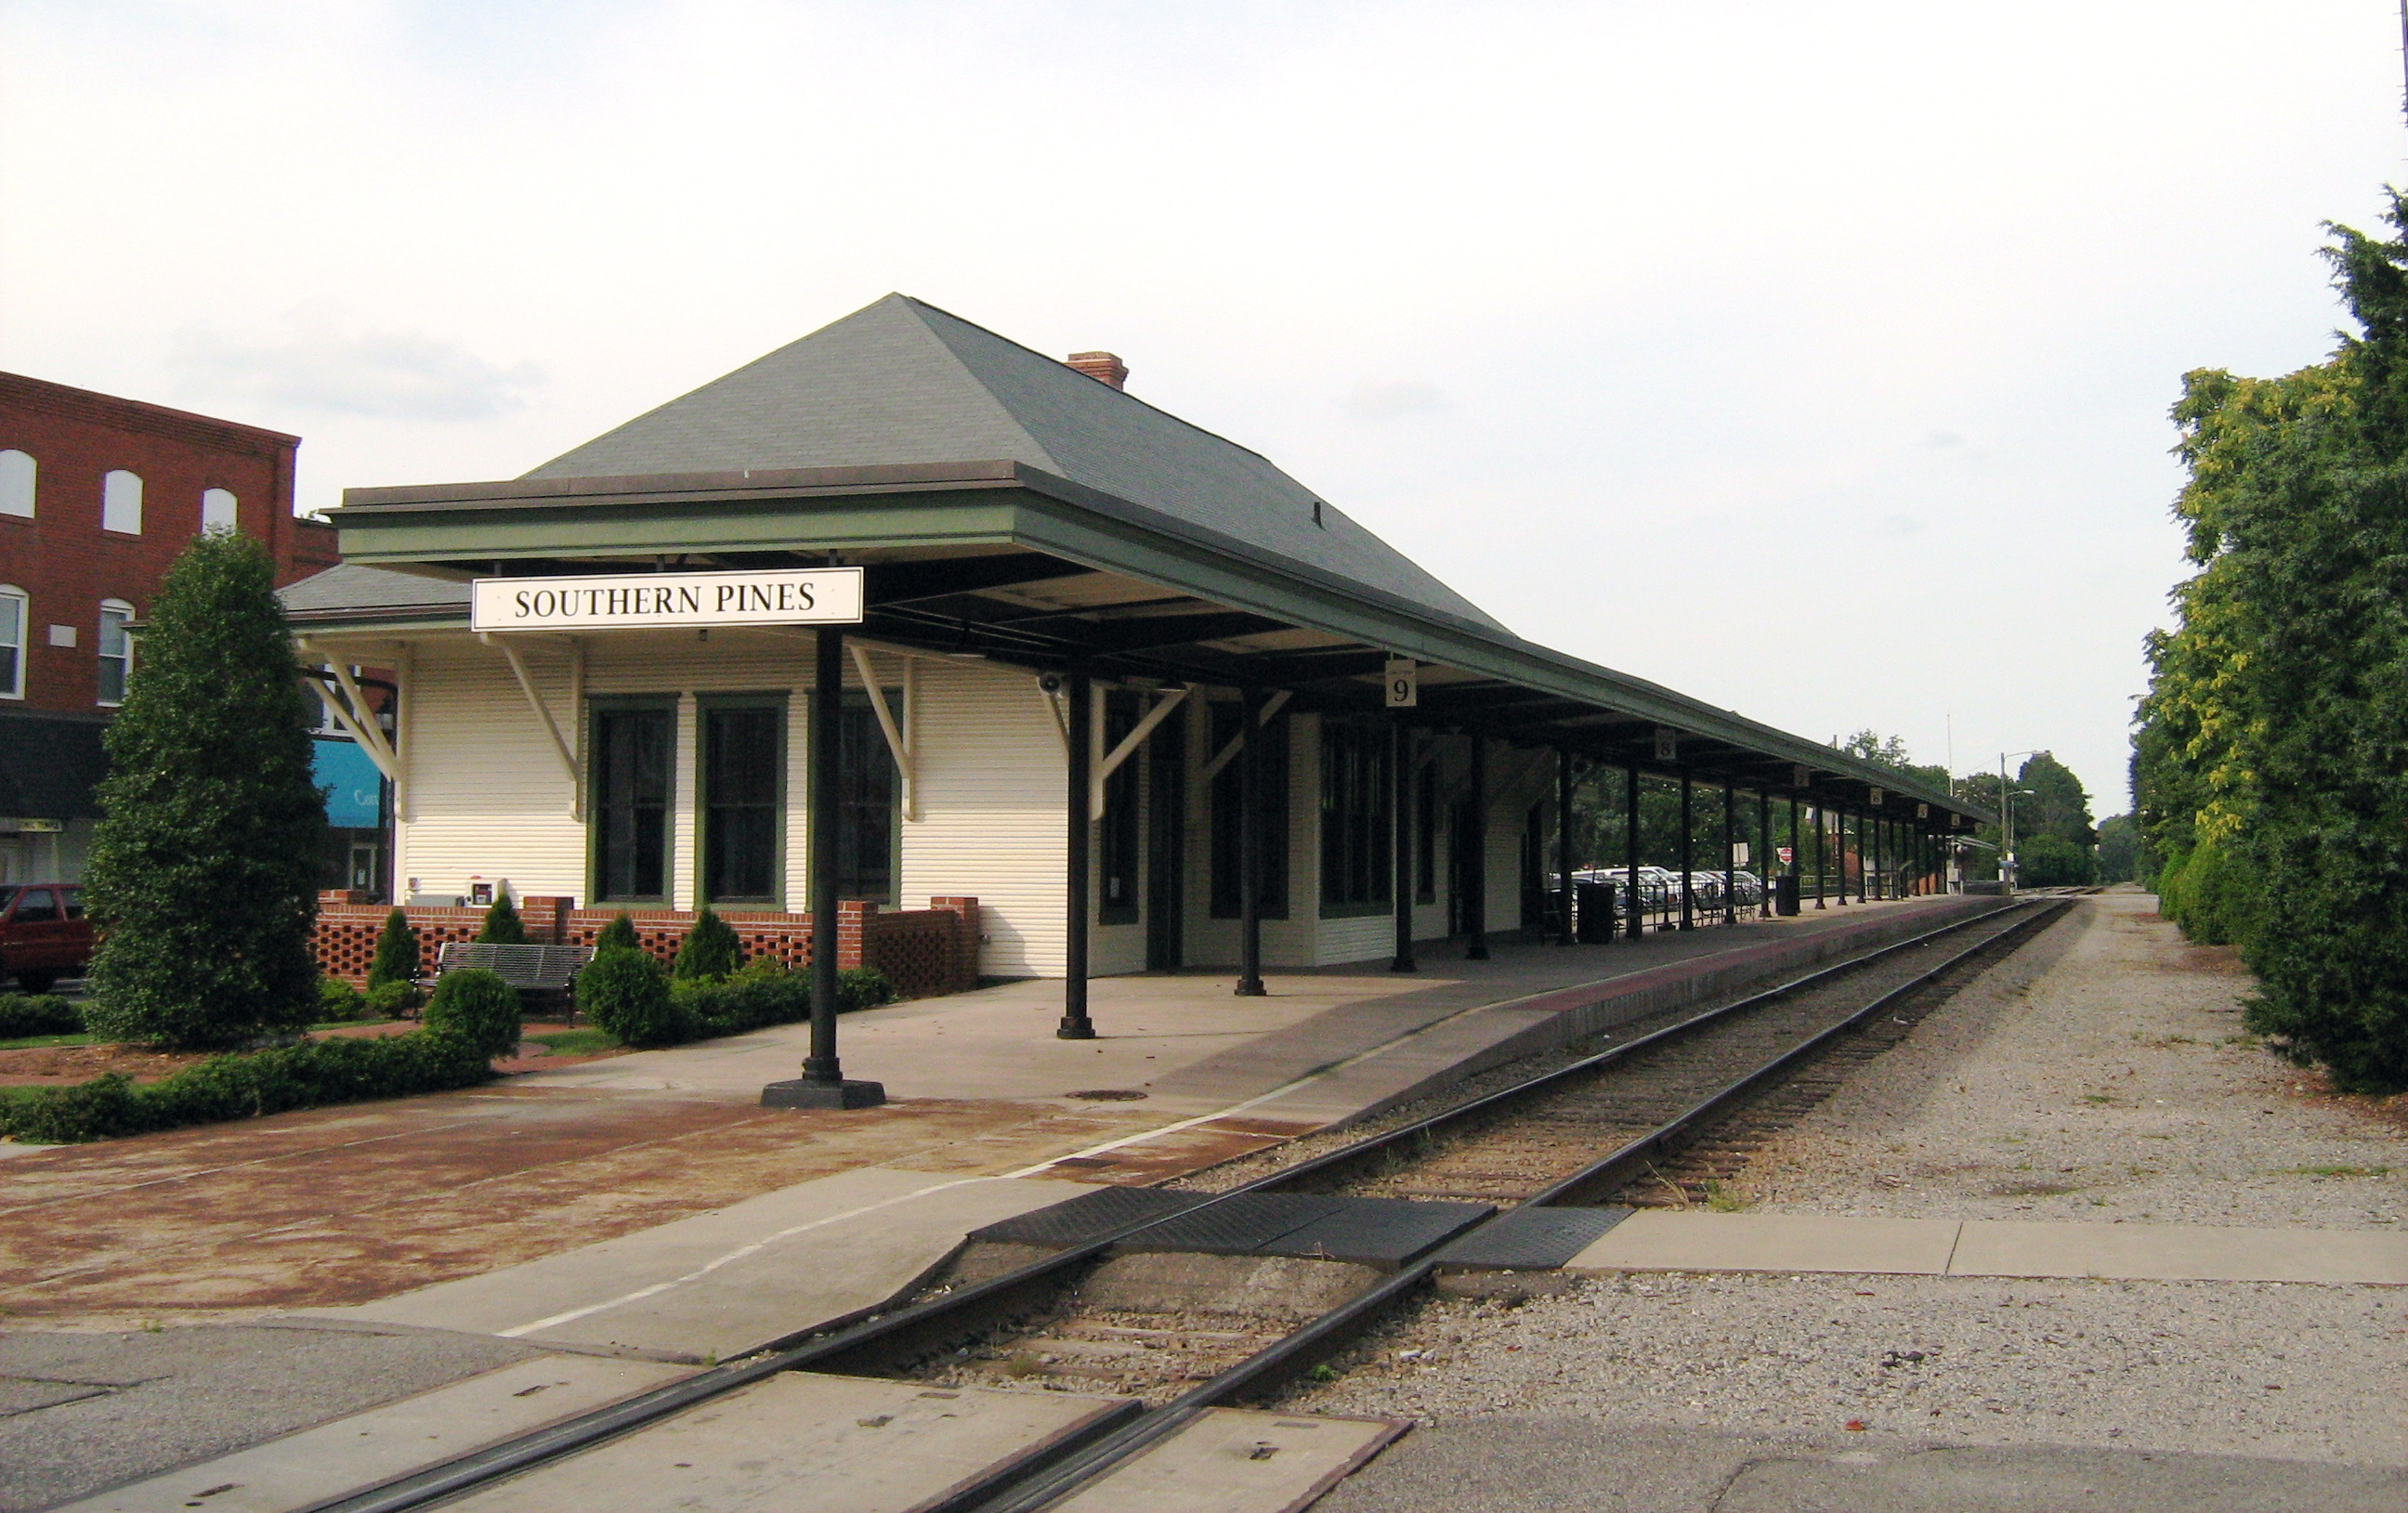 File:Southern Pines NC train station E.jpg - Wikimedia Commons